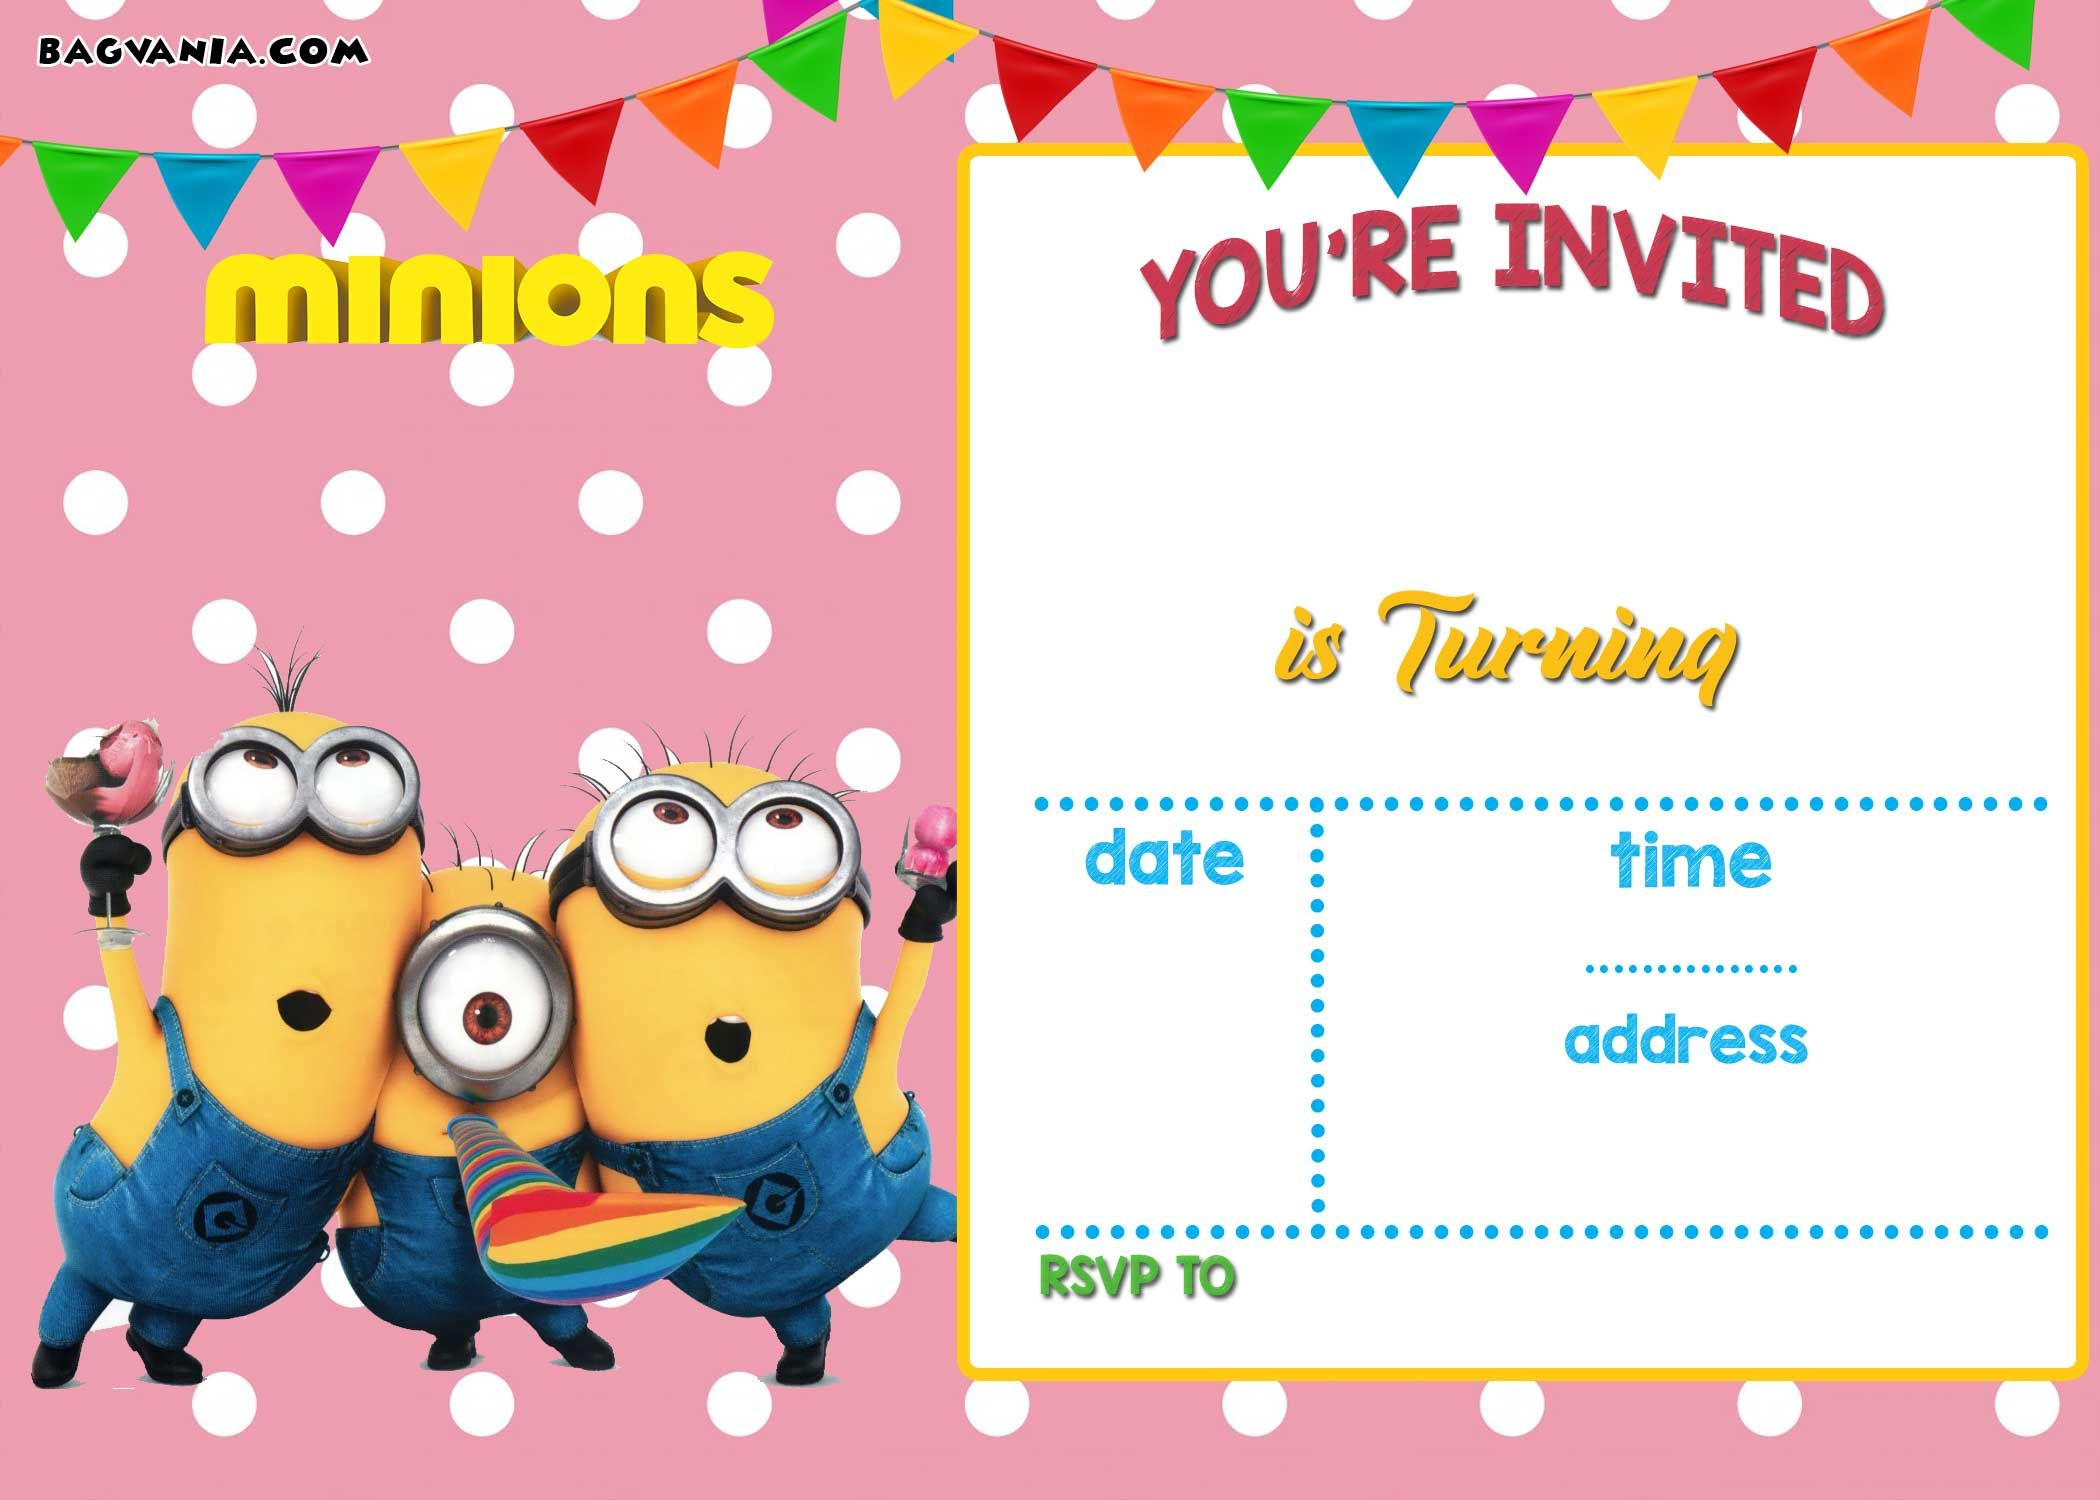 UPDATED! Bunch Of Minion Birthday Party Invitations Ideas - FREE ...